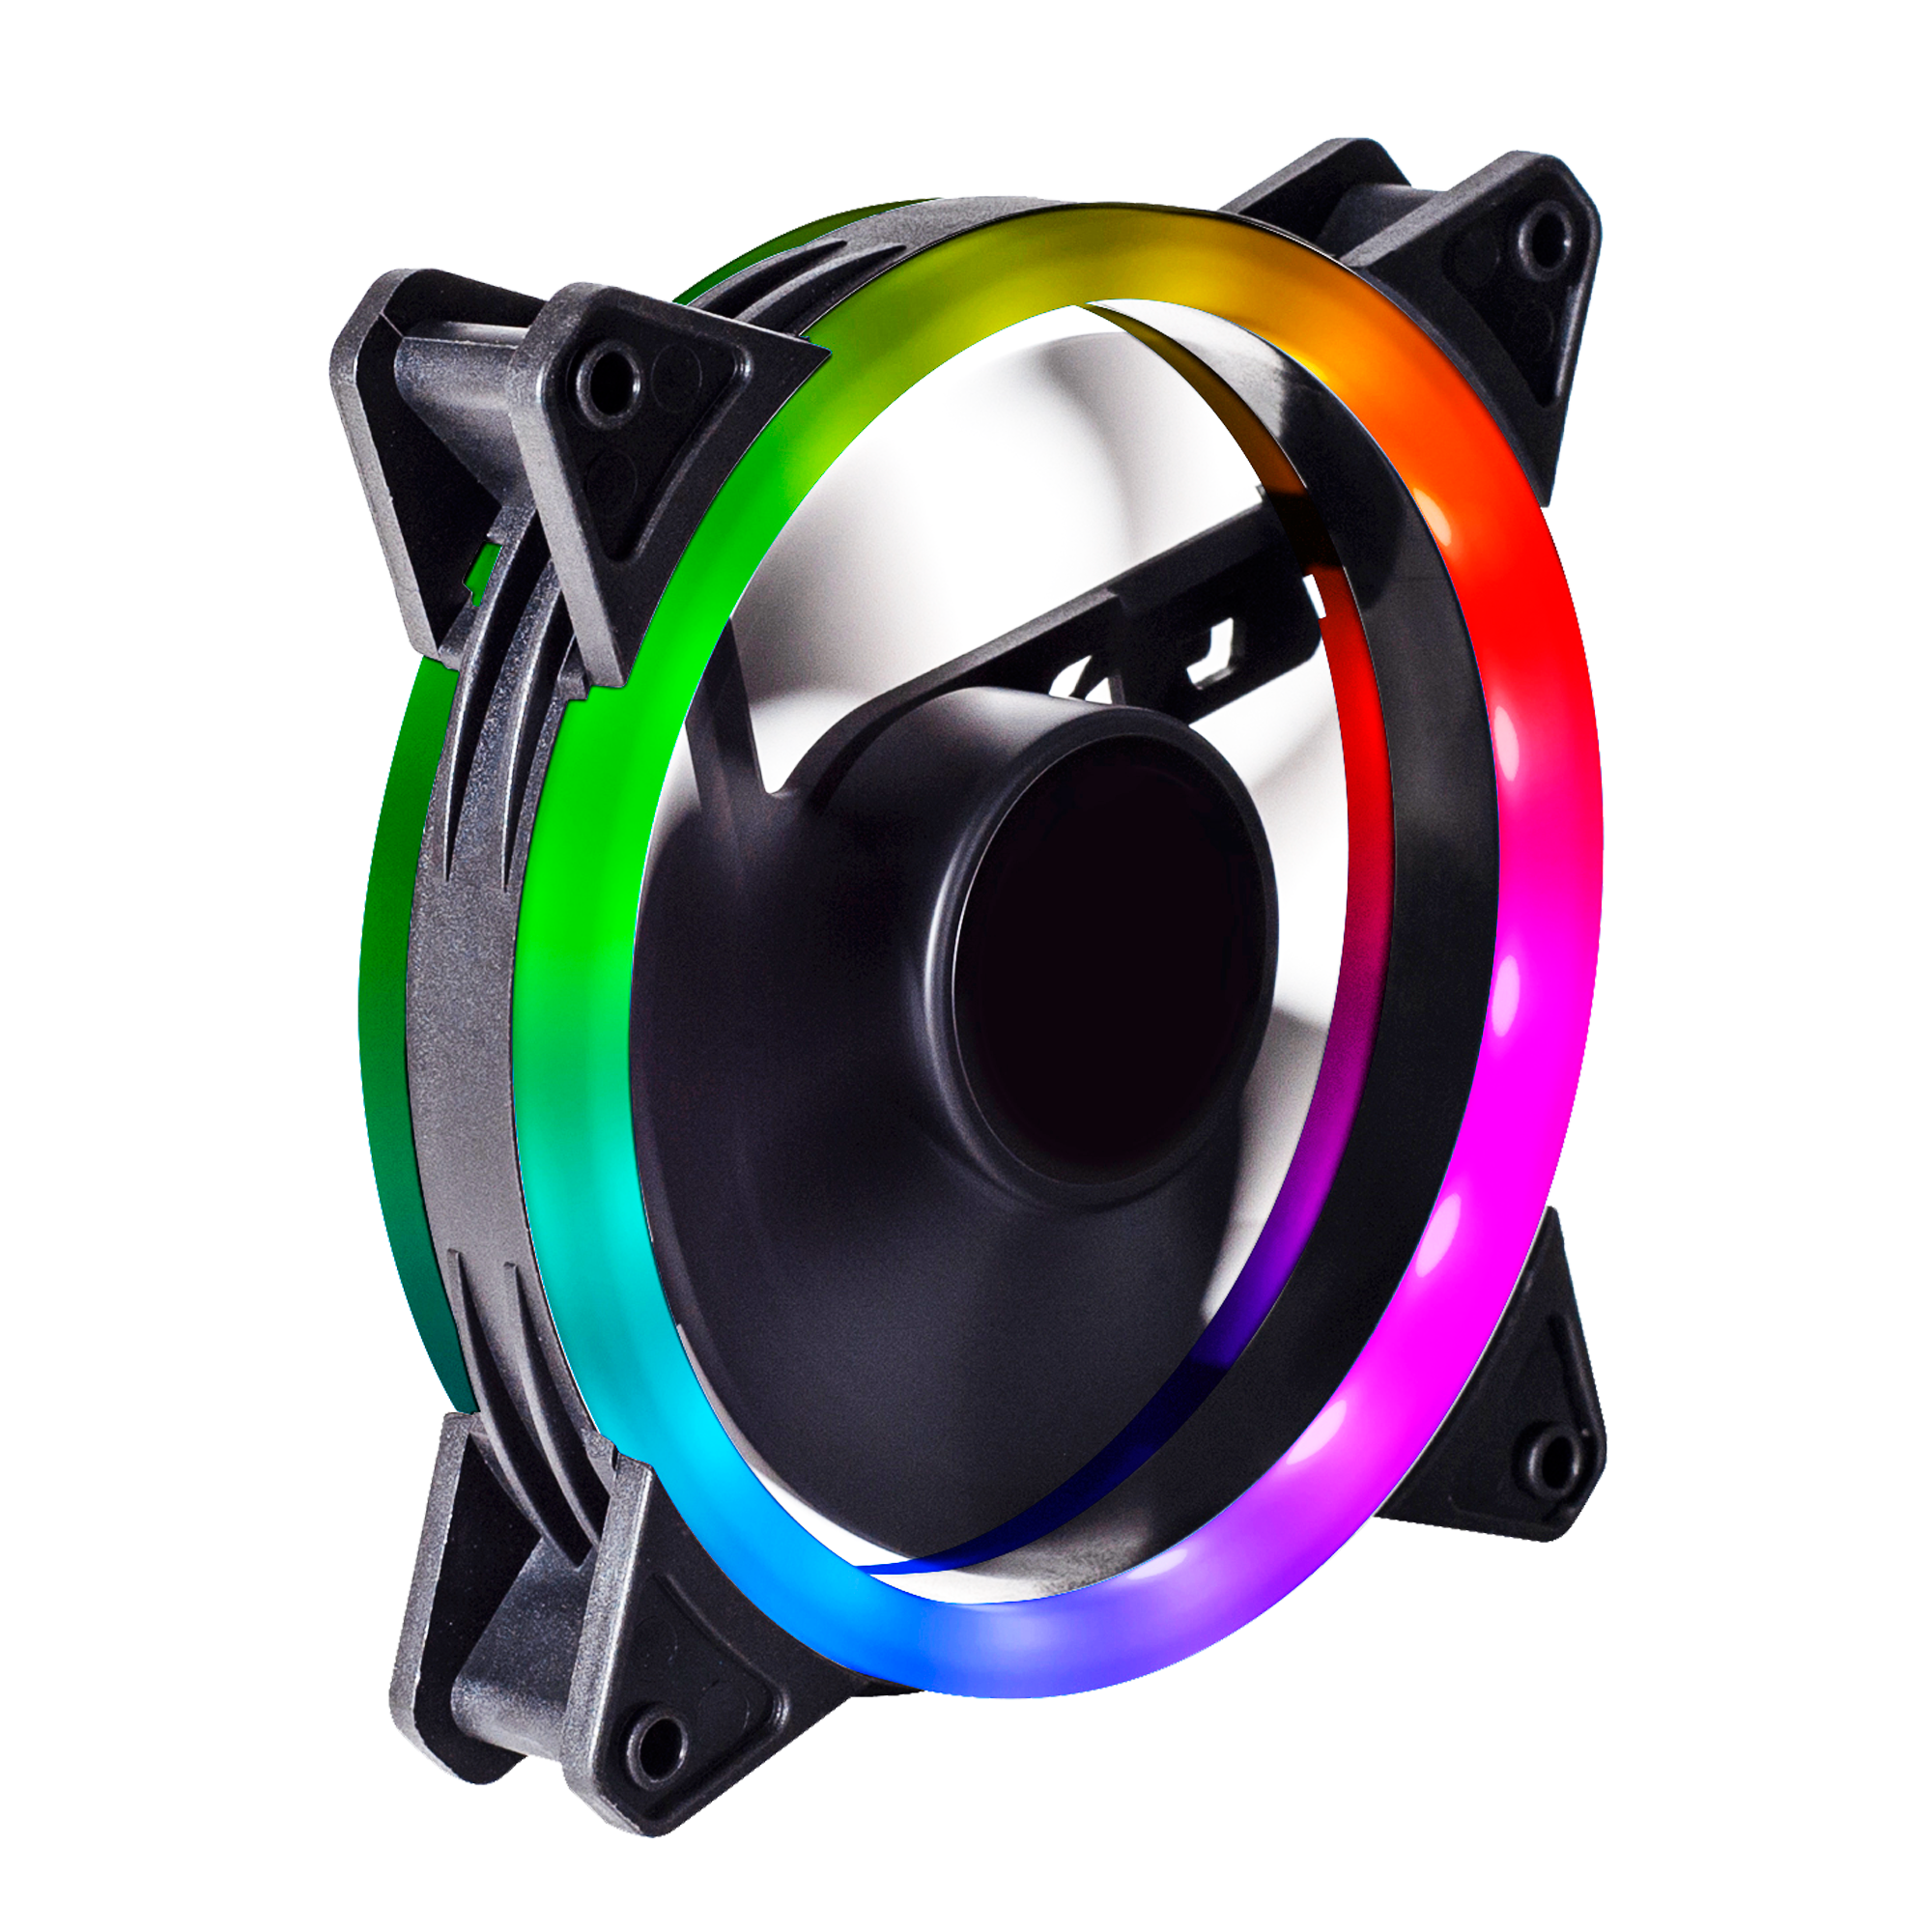 dual-ring-rainbow-rgb-Fan-Maain